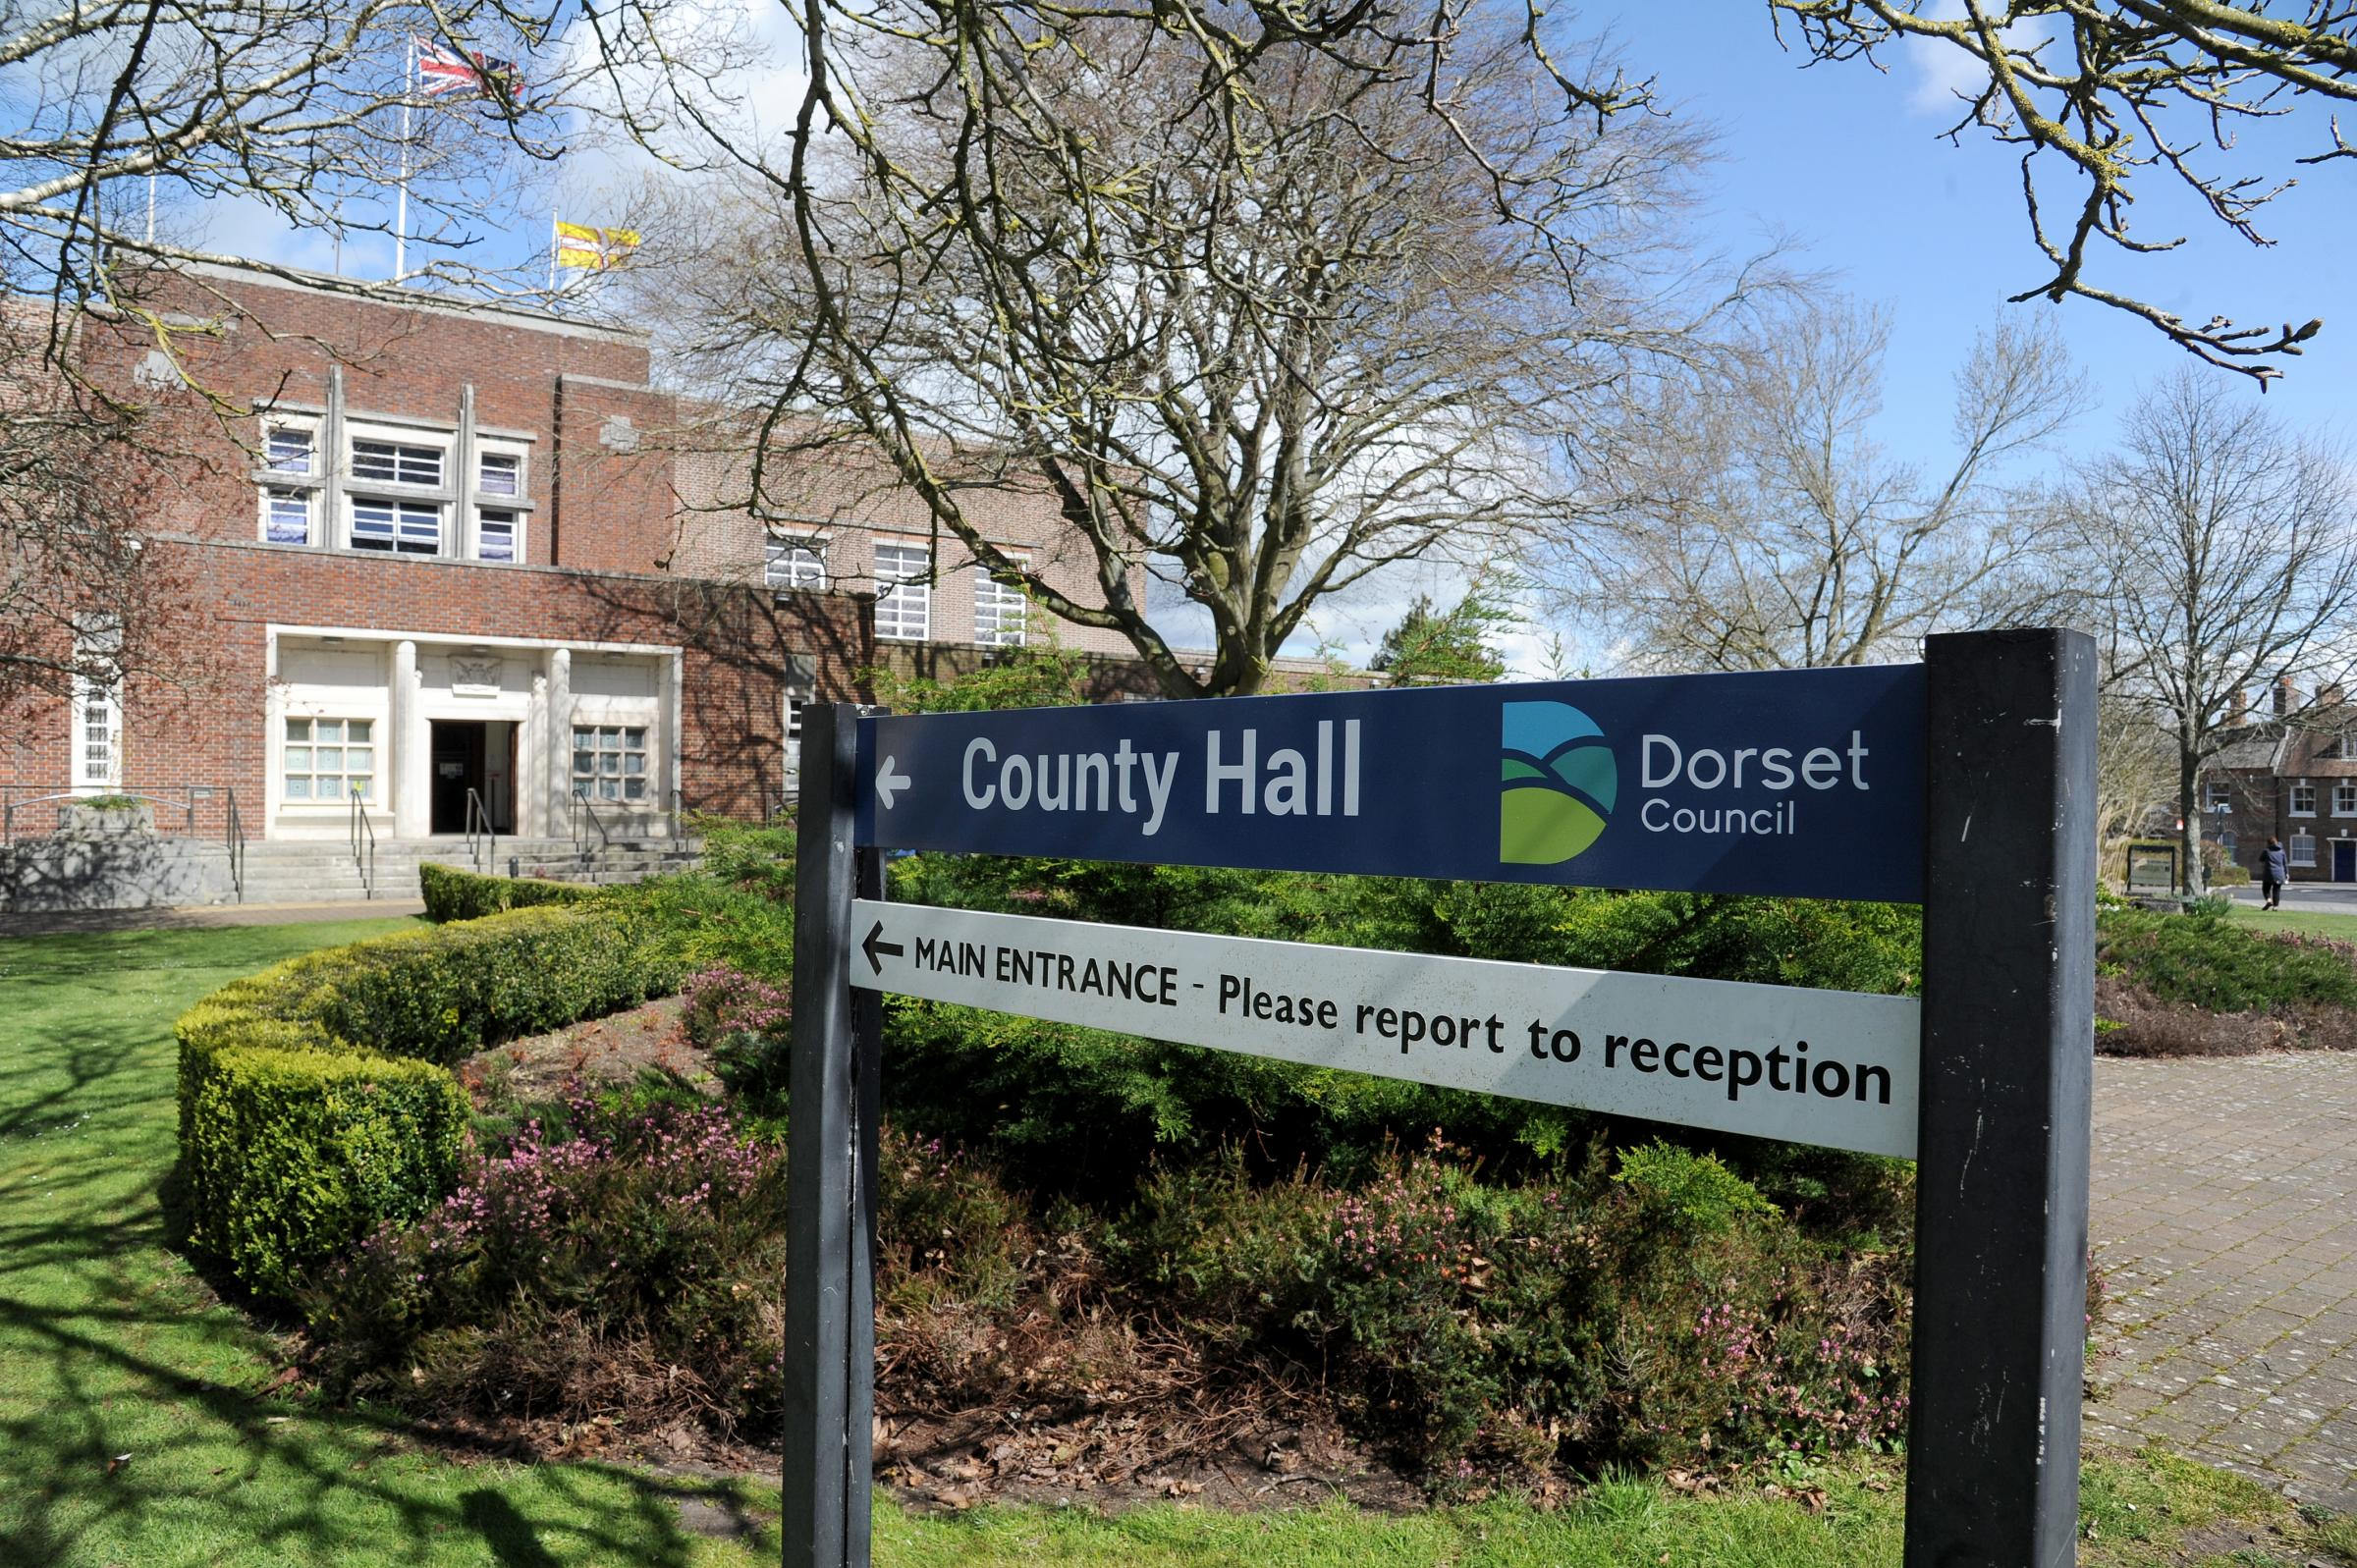 Dog training business at Watercombe House given planning permission despite noise complaints